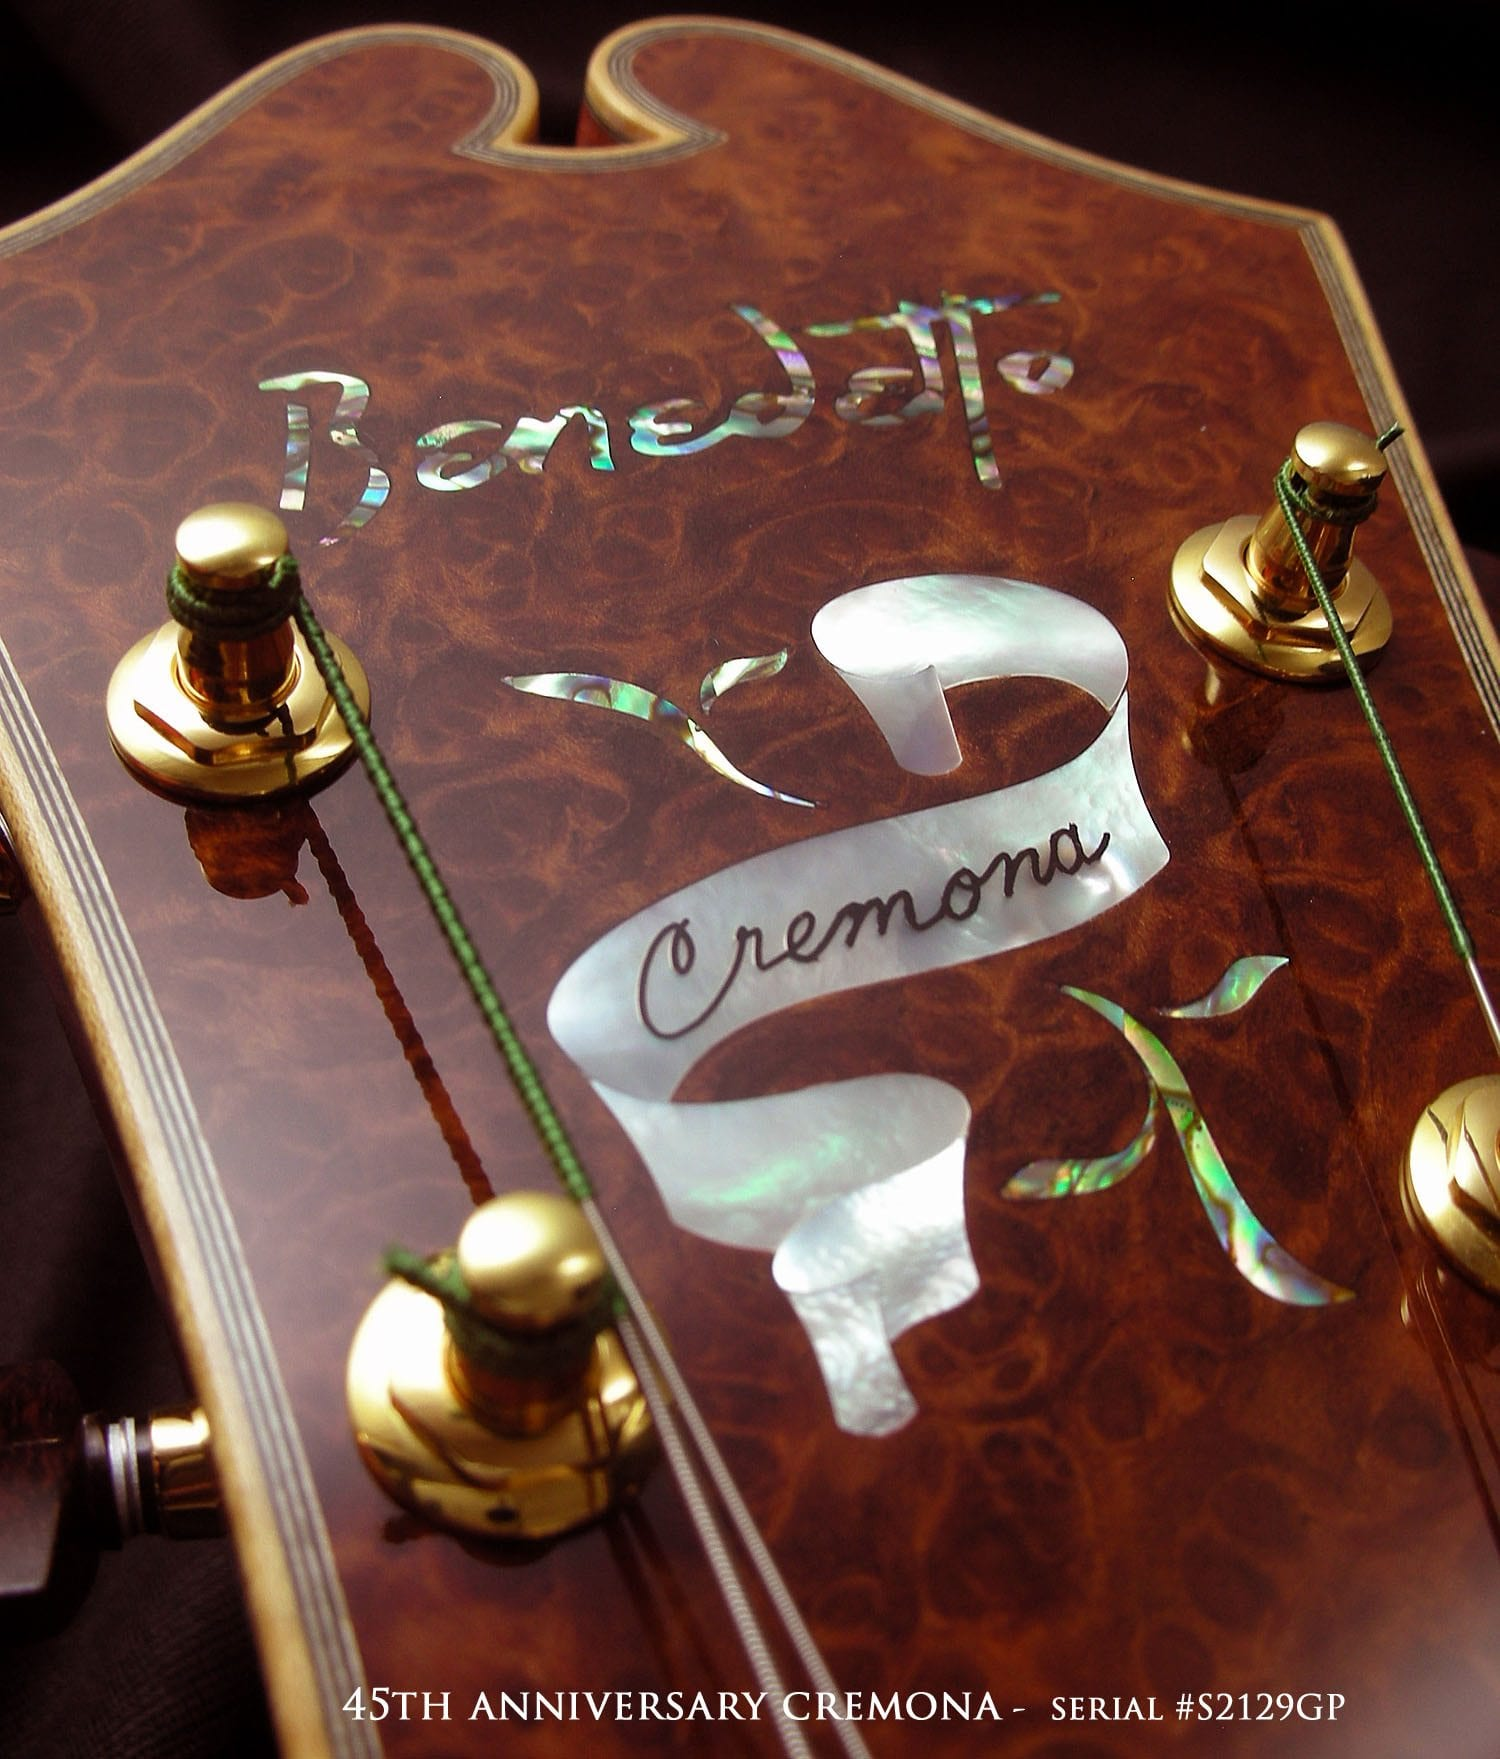 Visual Appearances of Headstocks-benedetto-45th-anniversary-cremona-serial-s2129gp-headstock-closeup-photo-stephanie-ward-jpg